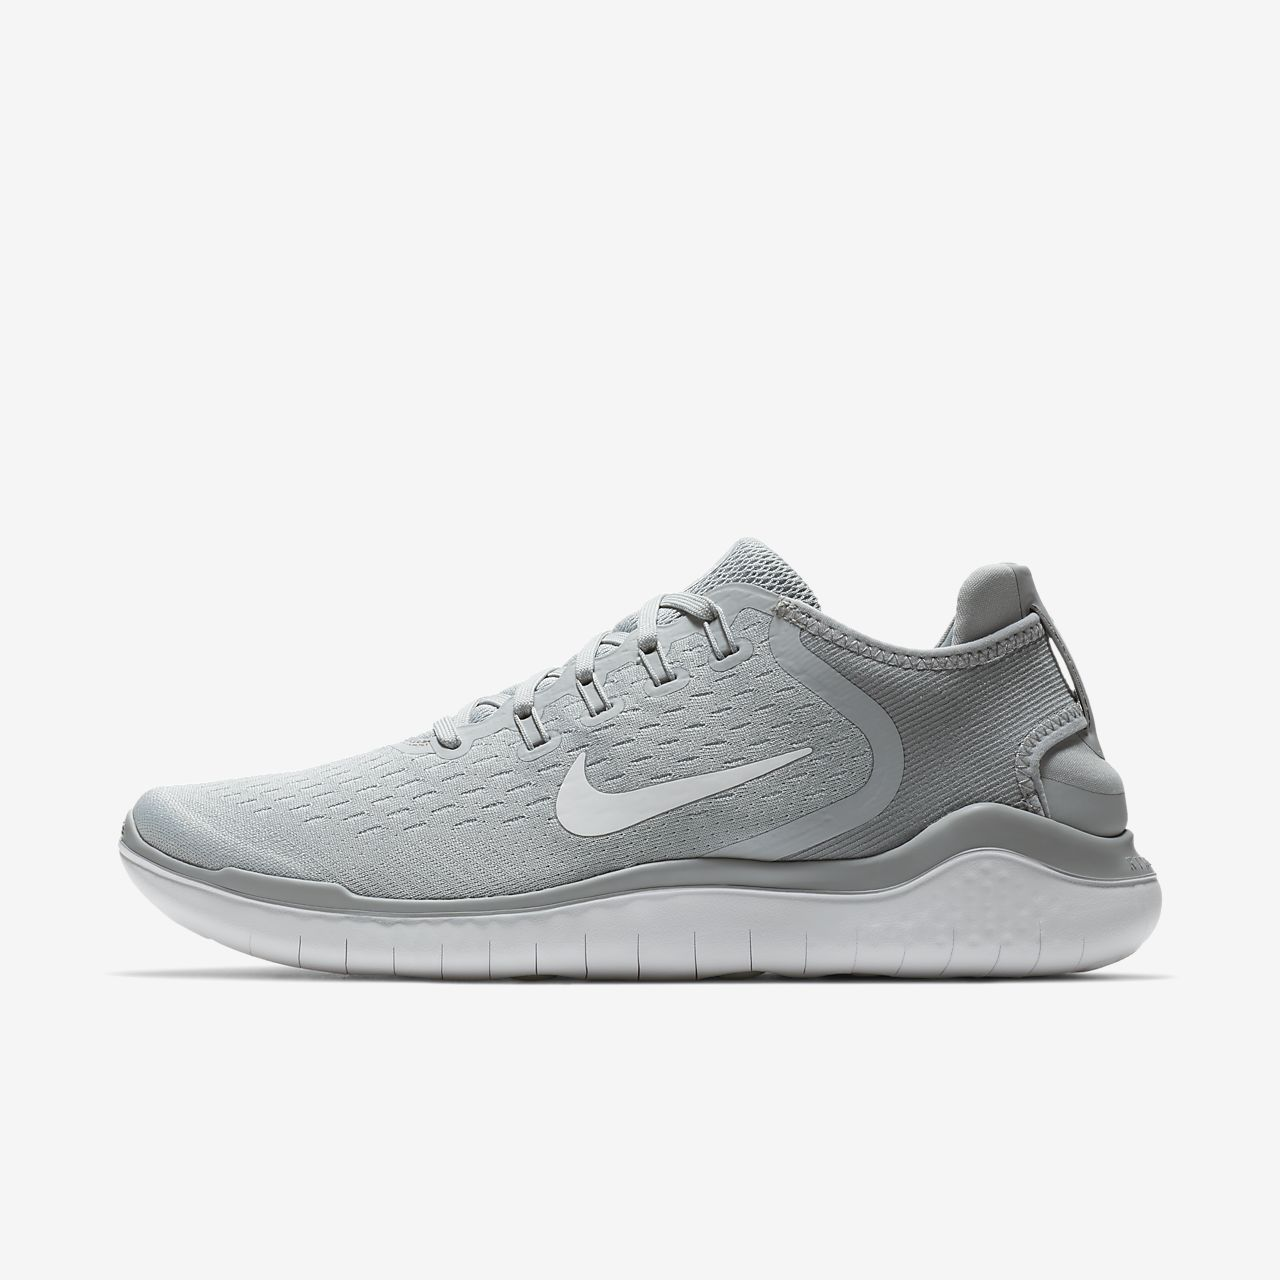 084827936c Nike Free RN 2018 Men s Running Shoe. Nike.com NO